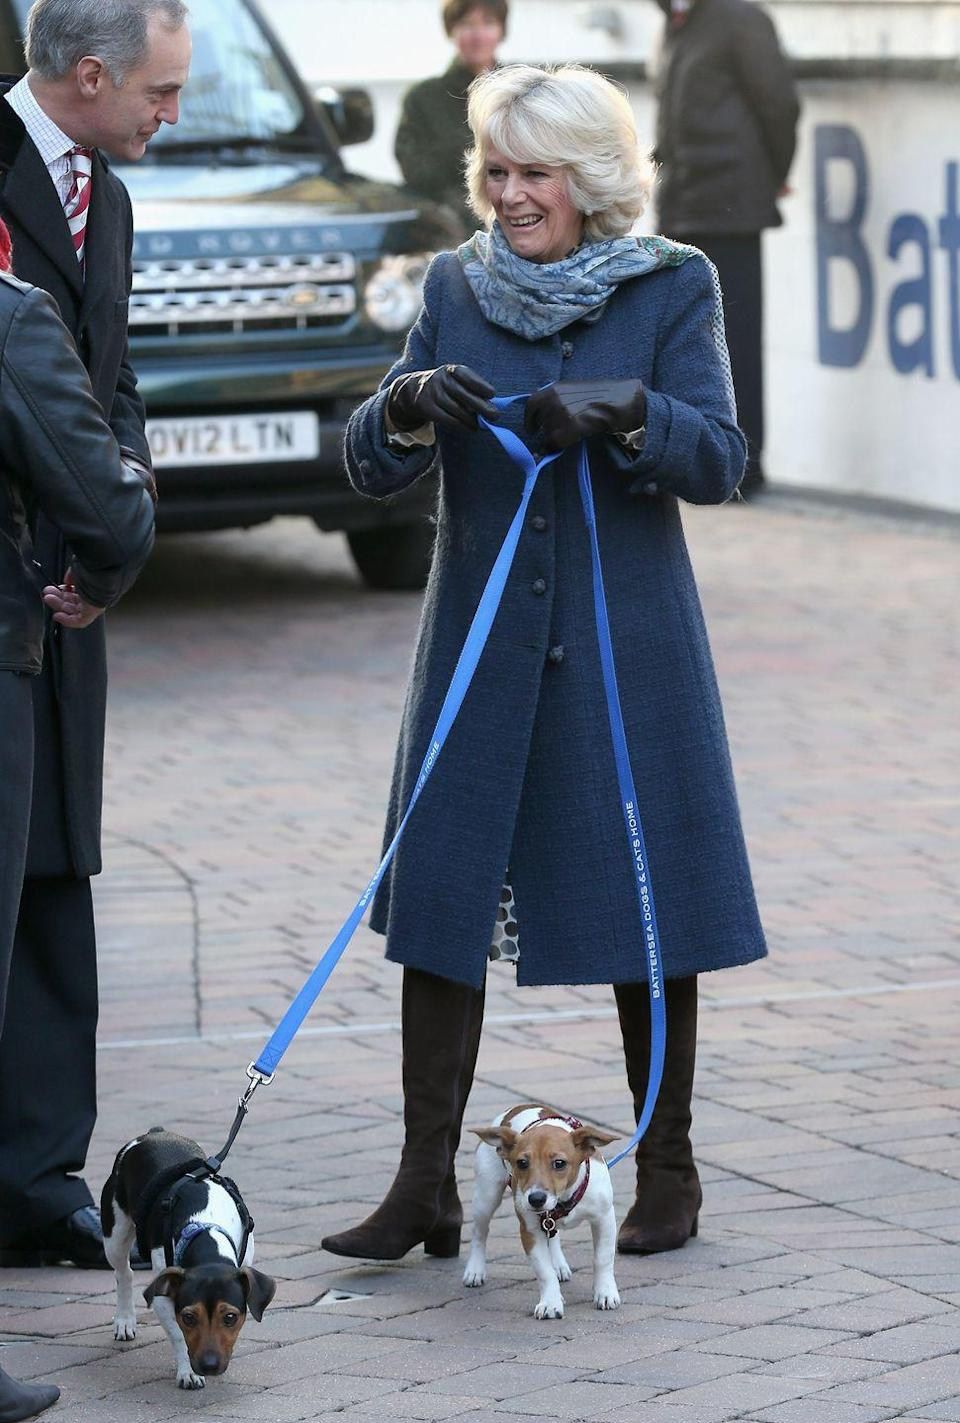 """<p>Prince Charles and Camilla are currently proud parents to two Jack Russell Terriers, Bluebell and Beth. Occasionally, they assist with Camilla's royal duties—sometimes even unveiling plaques themselves, as total champ <a href=""""https://www.townandcountrymag.com/society/tradition/a34917924/camilla-royal-dog-beth-unveils-plaque-video/"""" rel=""""nofollow noopener"""" target=""""_blank"""" data-ylk=""""slk:Beth recently did at the Battersea Dogs and Cats Home"""" class=""""link rapid-noclick-resp"""">Beth recently did at the Battersea Dogs and Cats Home</a>.</p>"""